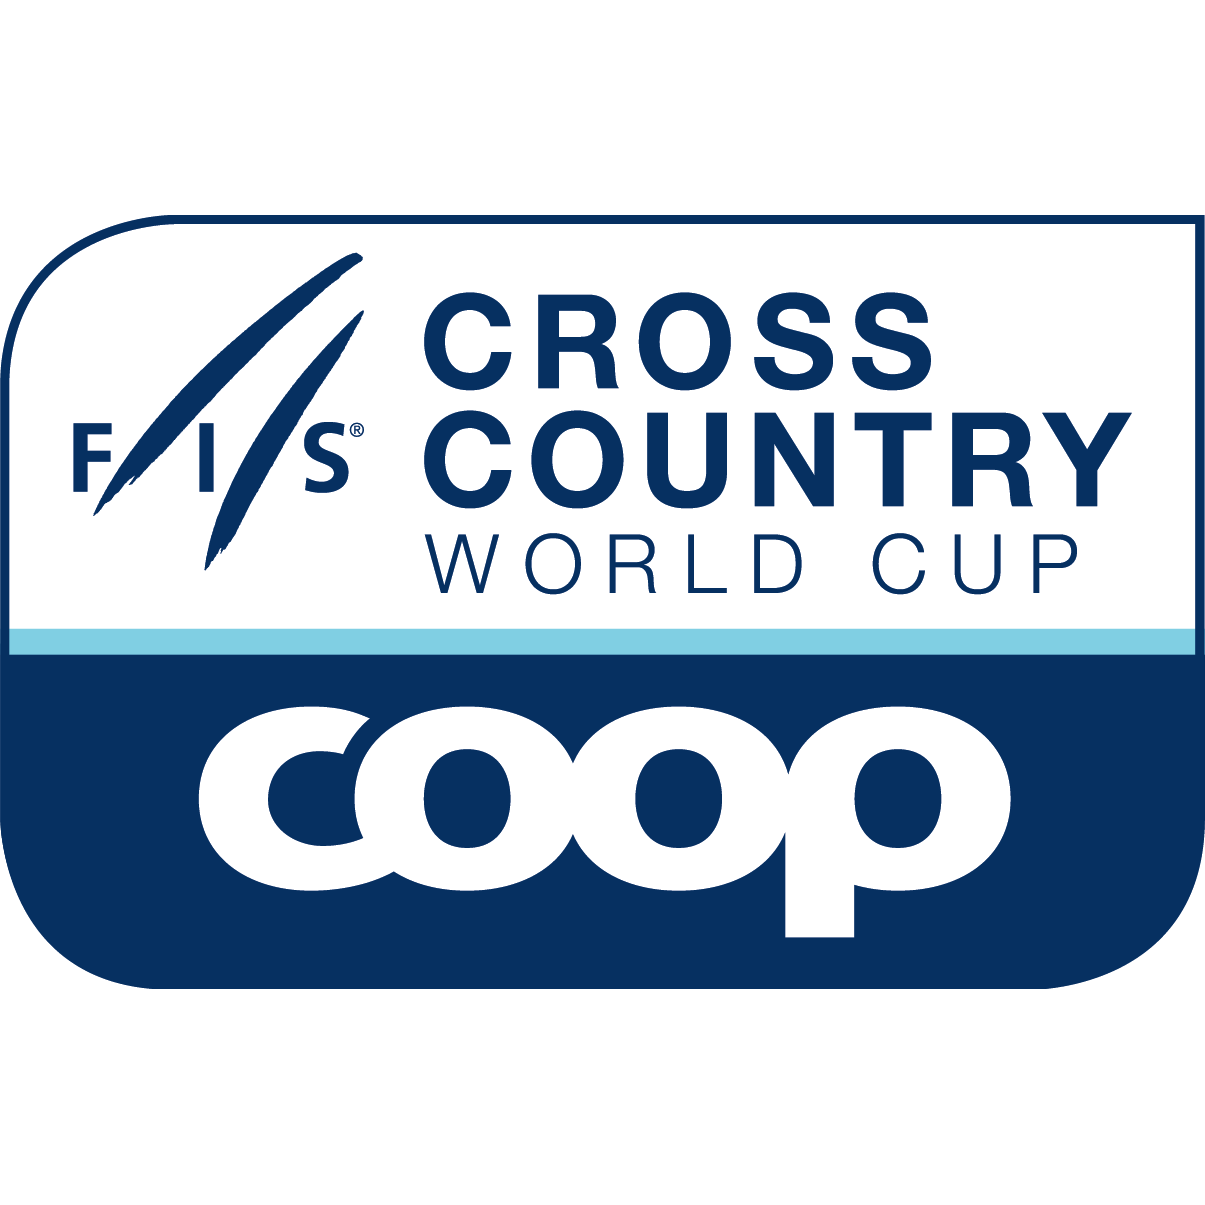 2016 FIS Cross Country World Cup - Tour de Ski